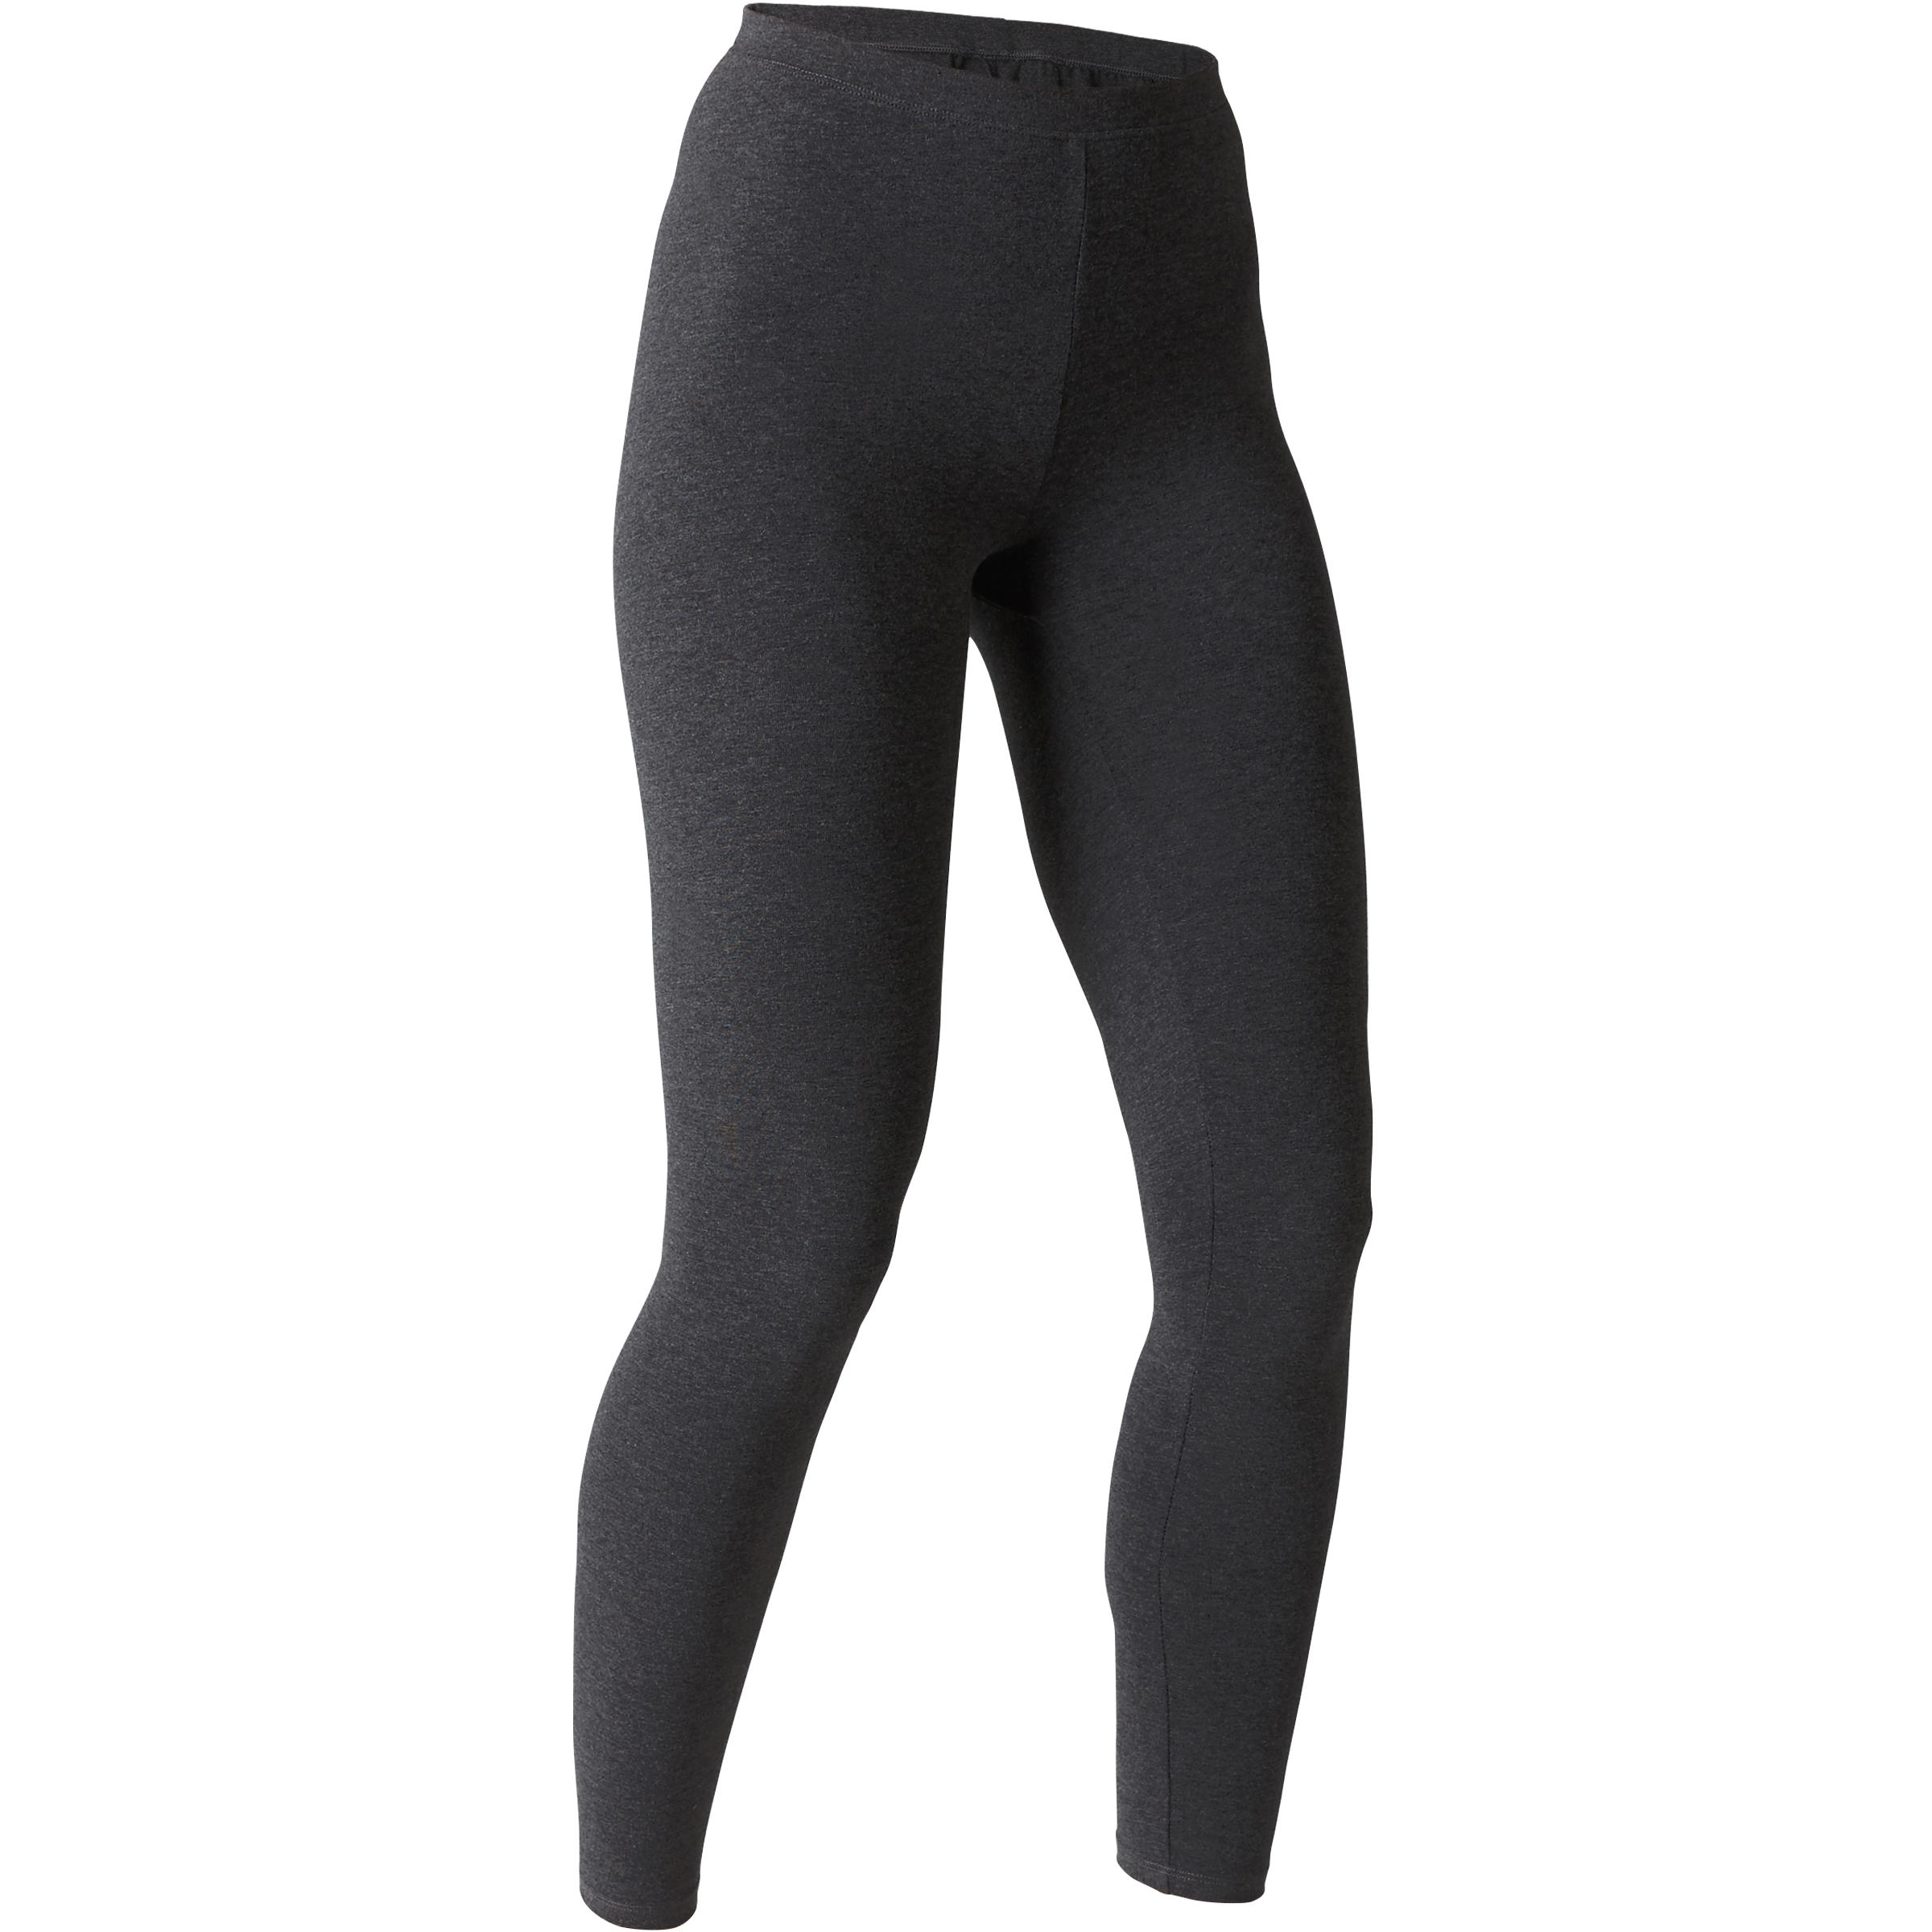 Leggings Stretch 100 slim Pilates y Gimnasia suave mujer gris